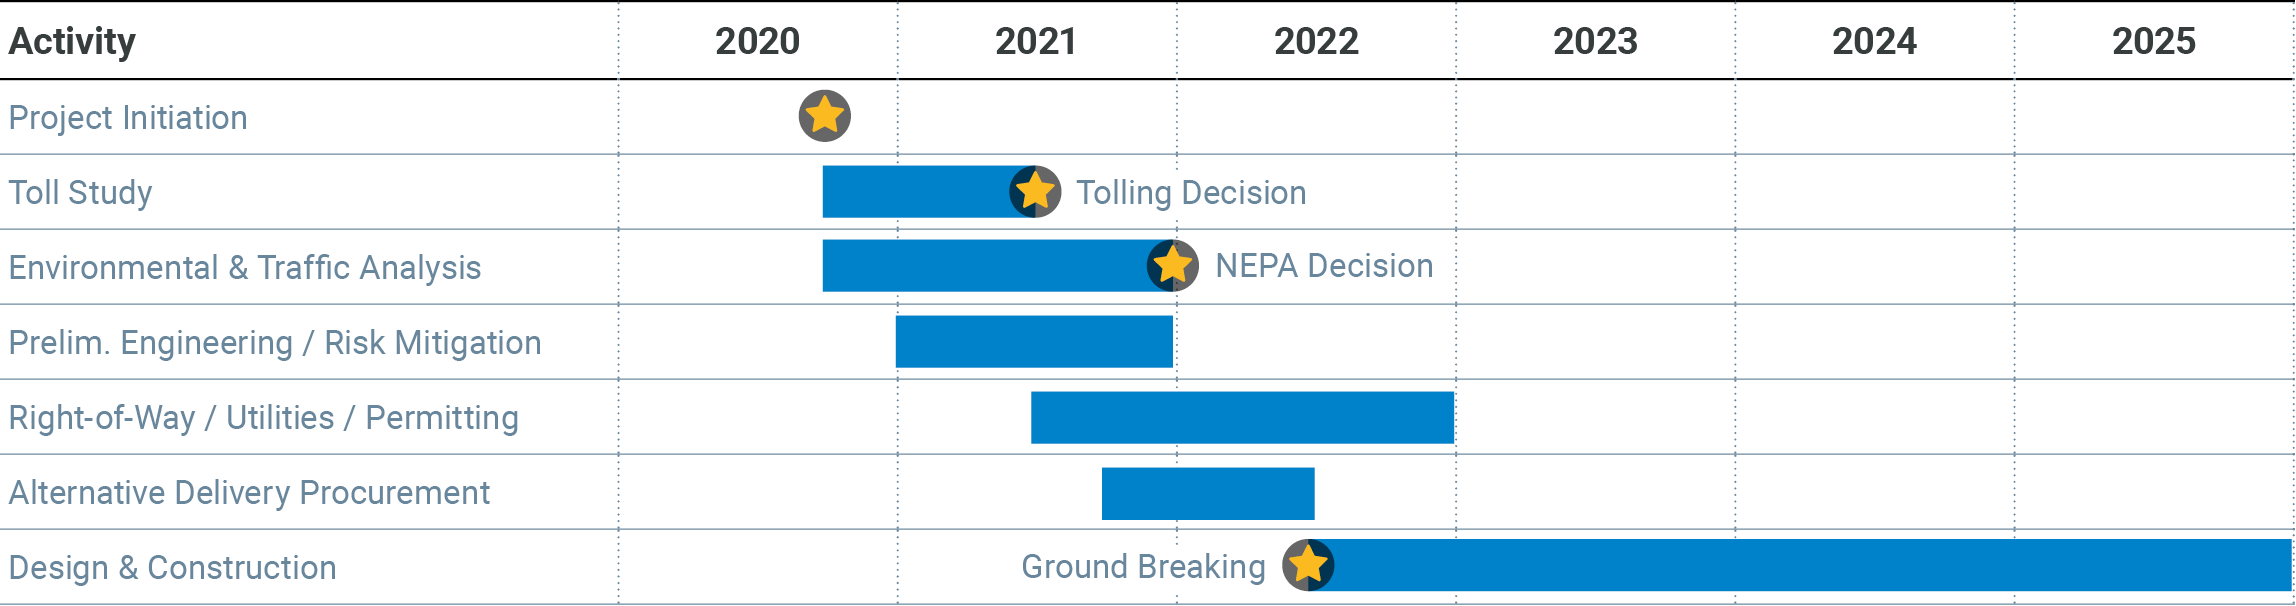 69 Express Project projected timeline 2020 to 2025